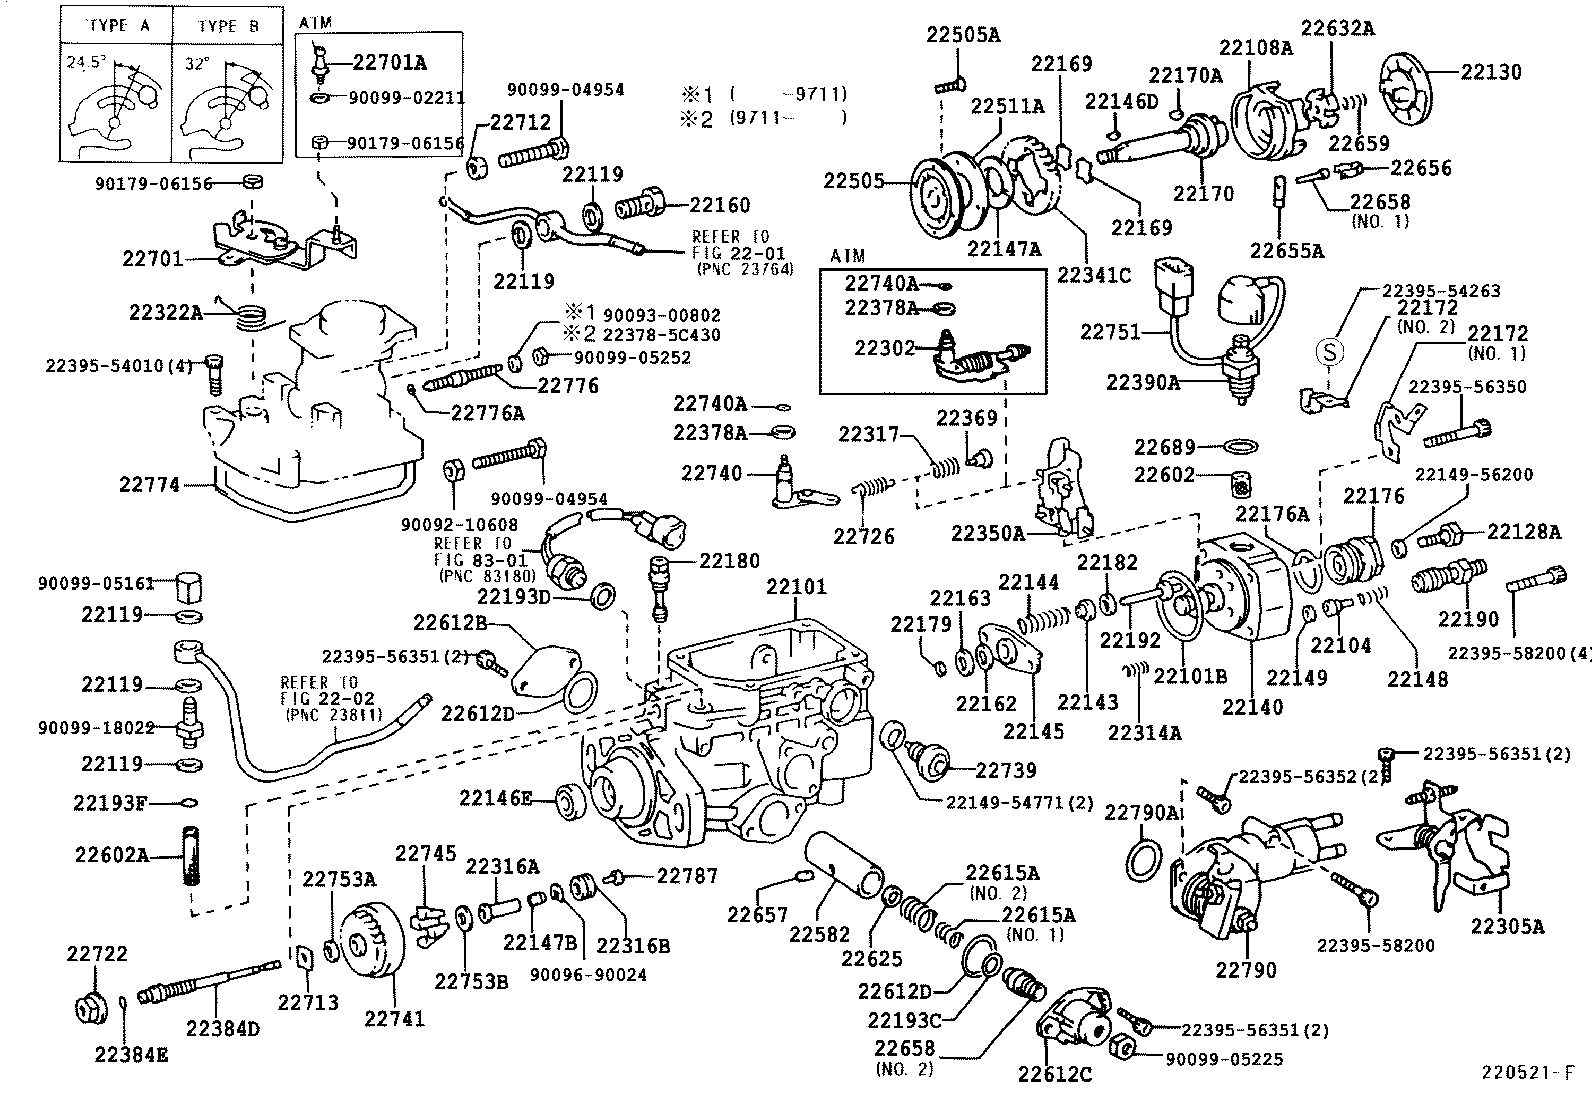 basic wiring diagram v6 engine with 96 Toyota Ta A Knock Sensor Location on 71uma Ford Tempo Gl Need Parts Diagram 1988 Ford Tempo together with Index as well ShowAssembly additionally 96 Toyota Ta a Knock Sensor Location likewise V8 Engine Diagram Basic.